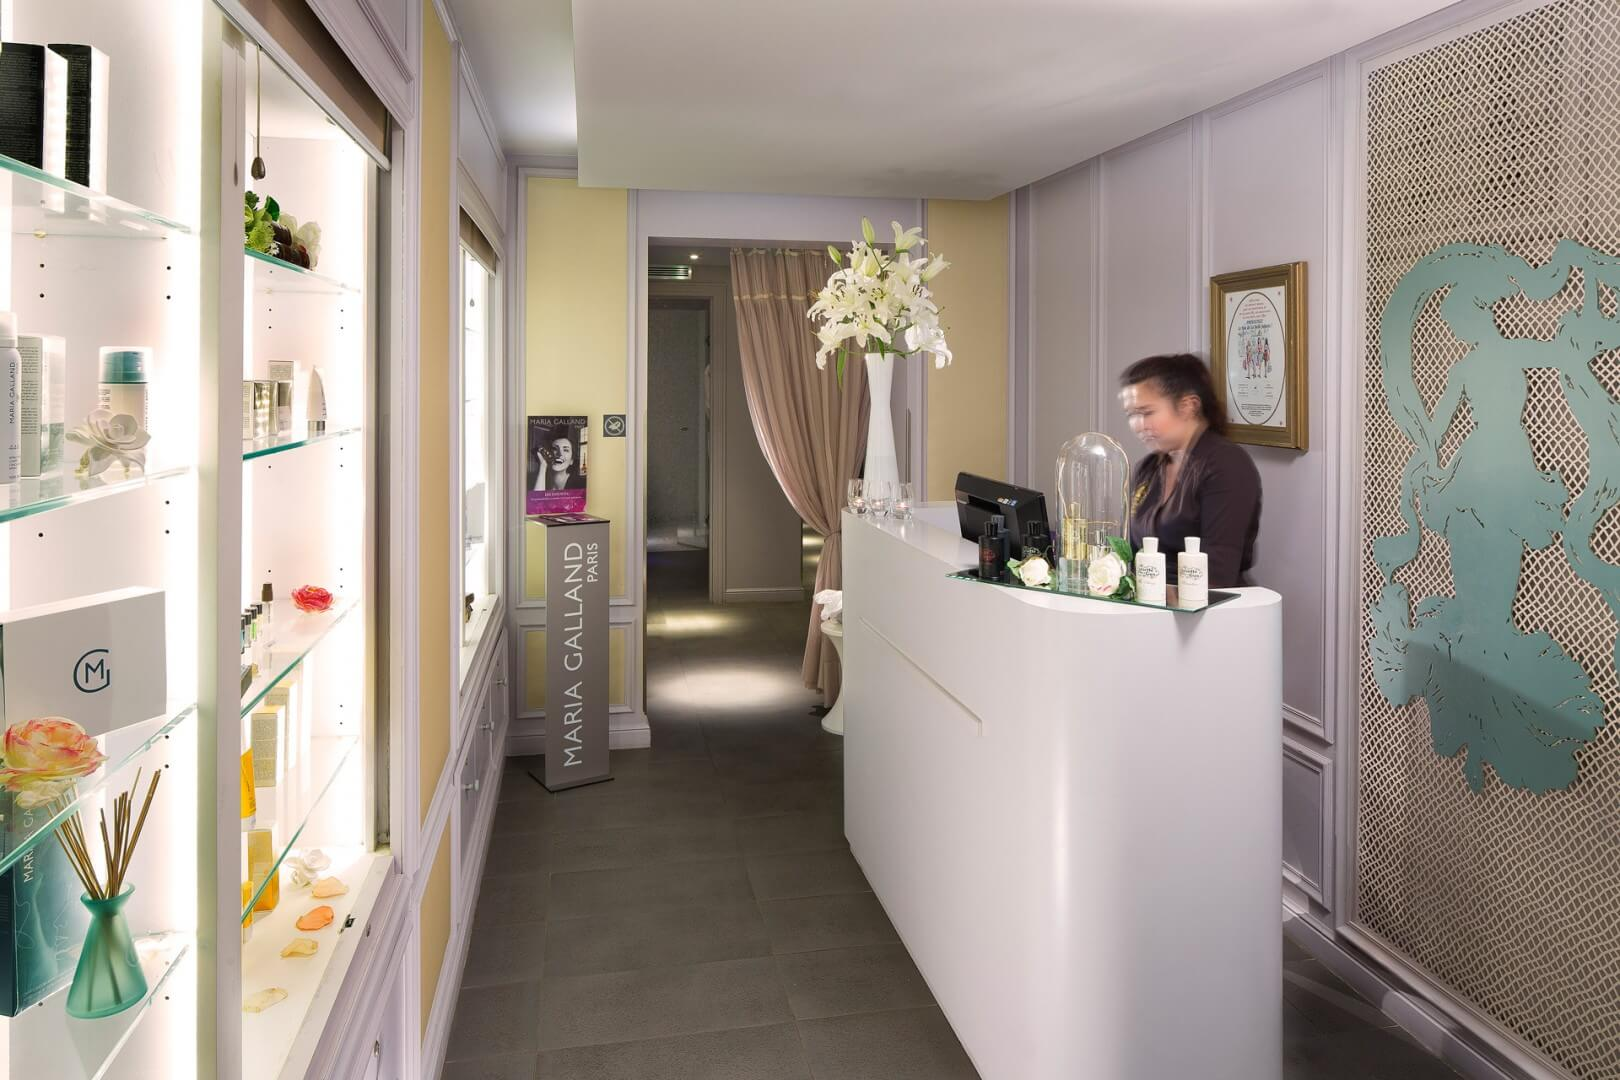 Hotel U0026 Spa La Belle Juliette Paris | 4 Star Hotel In St Germain Des ...